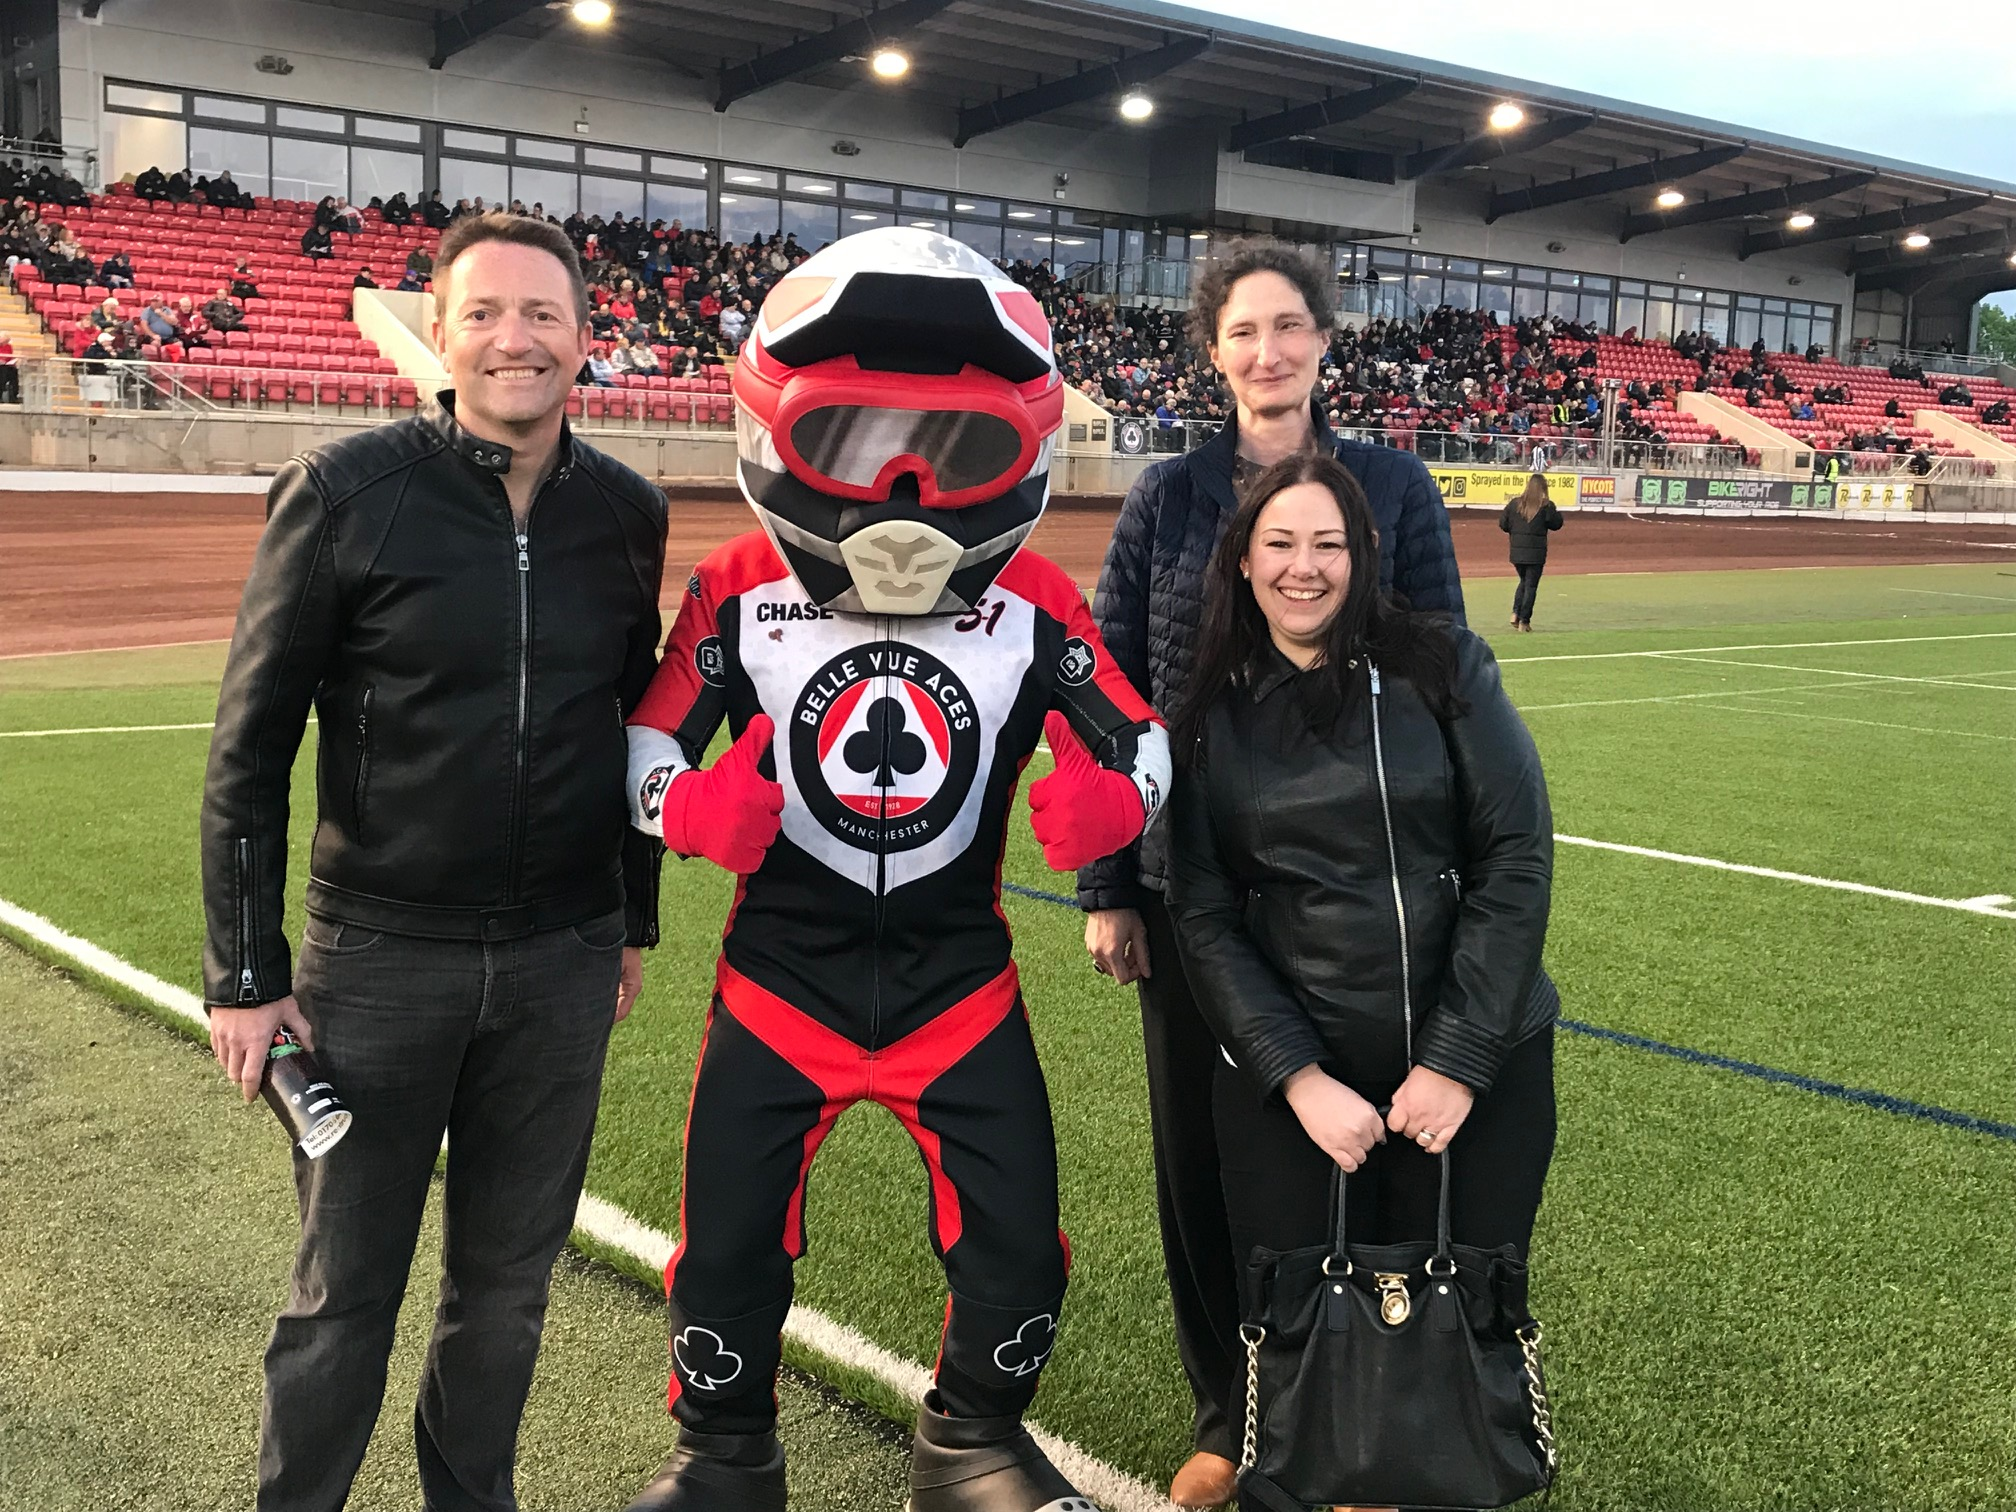 Team Thorneycroft: Mark Belfield, Mary Lomas and Sarah Coxon with Belle Vue mascot Chase The Ace